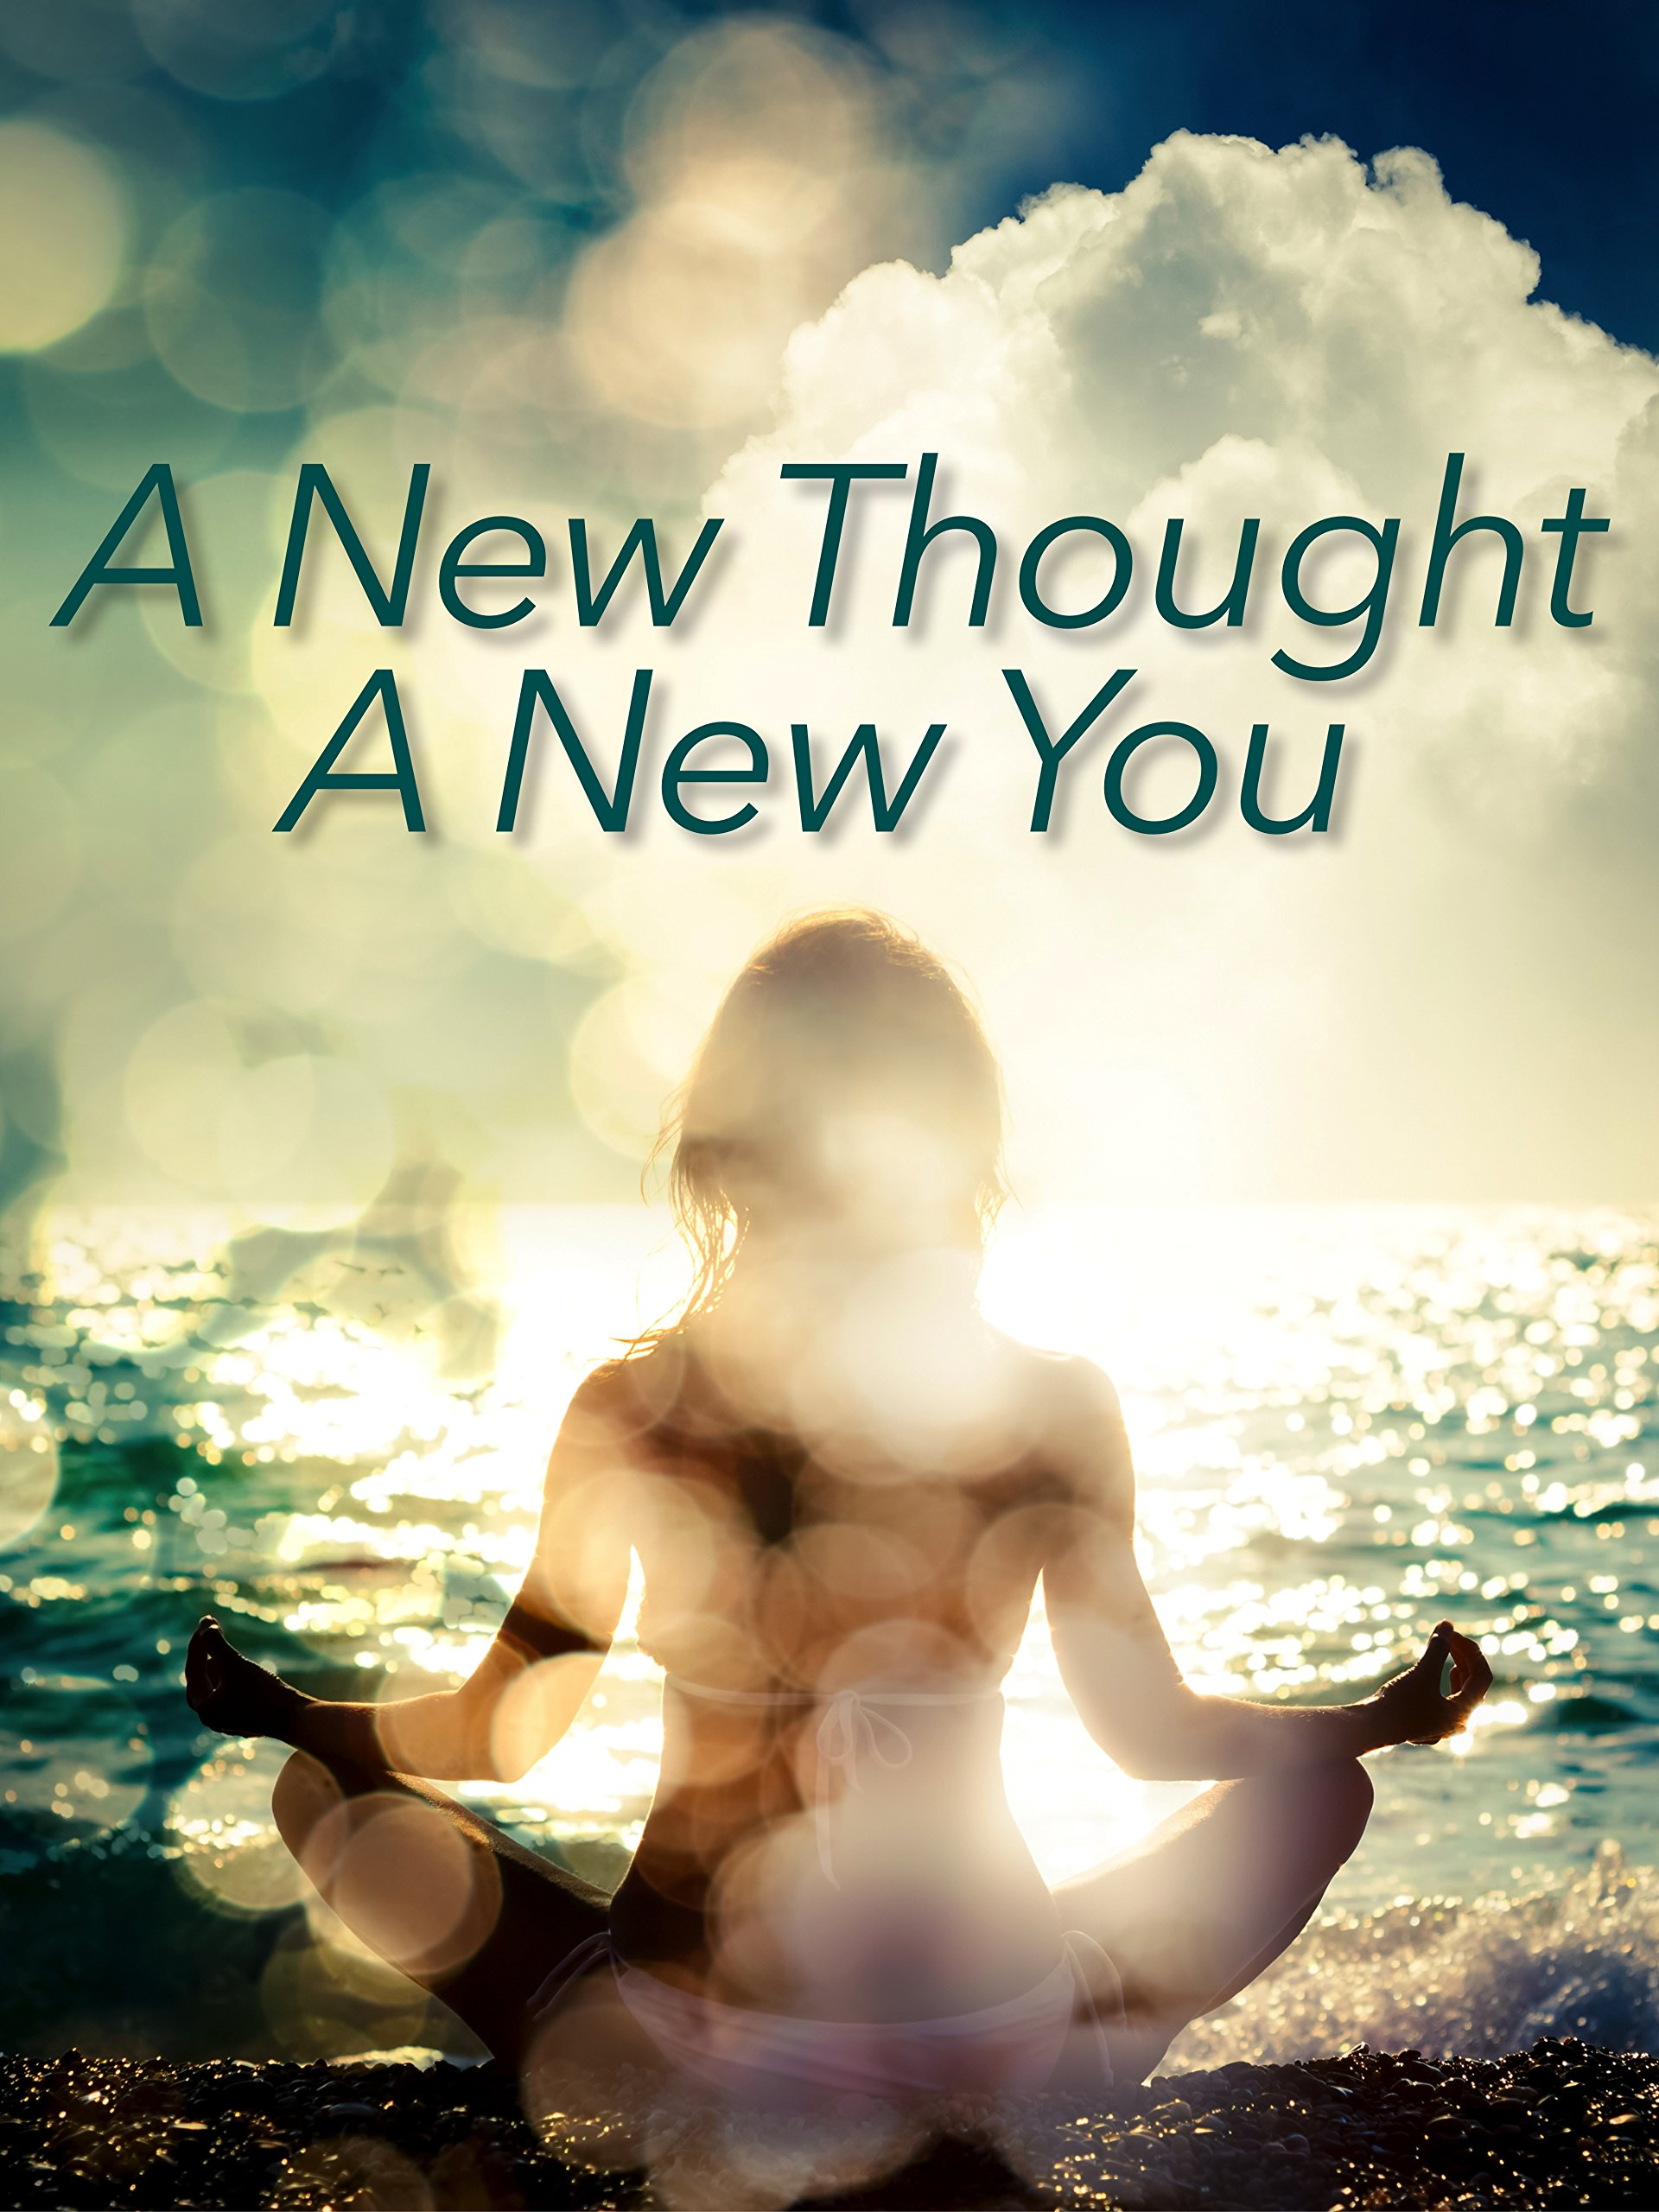 A New Thought, A New You